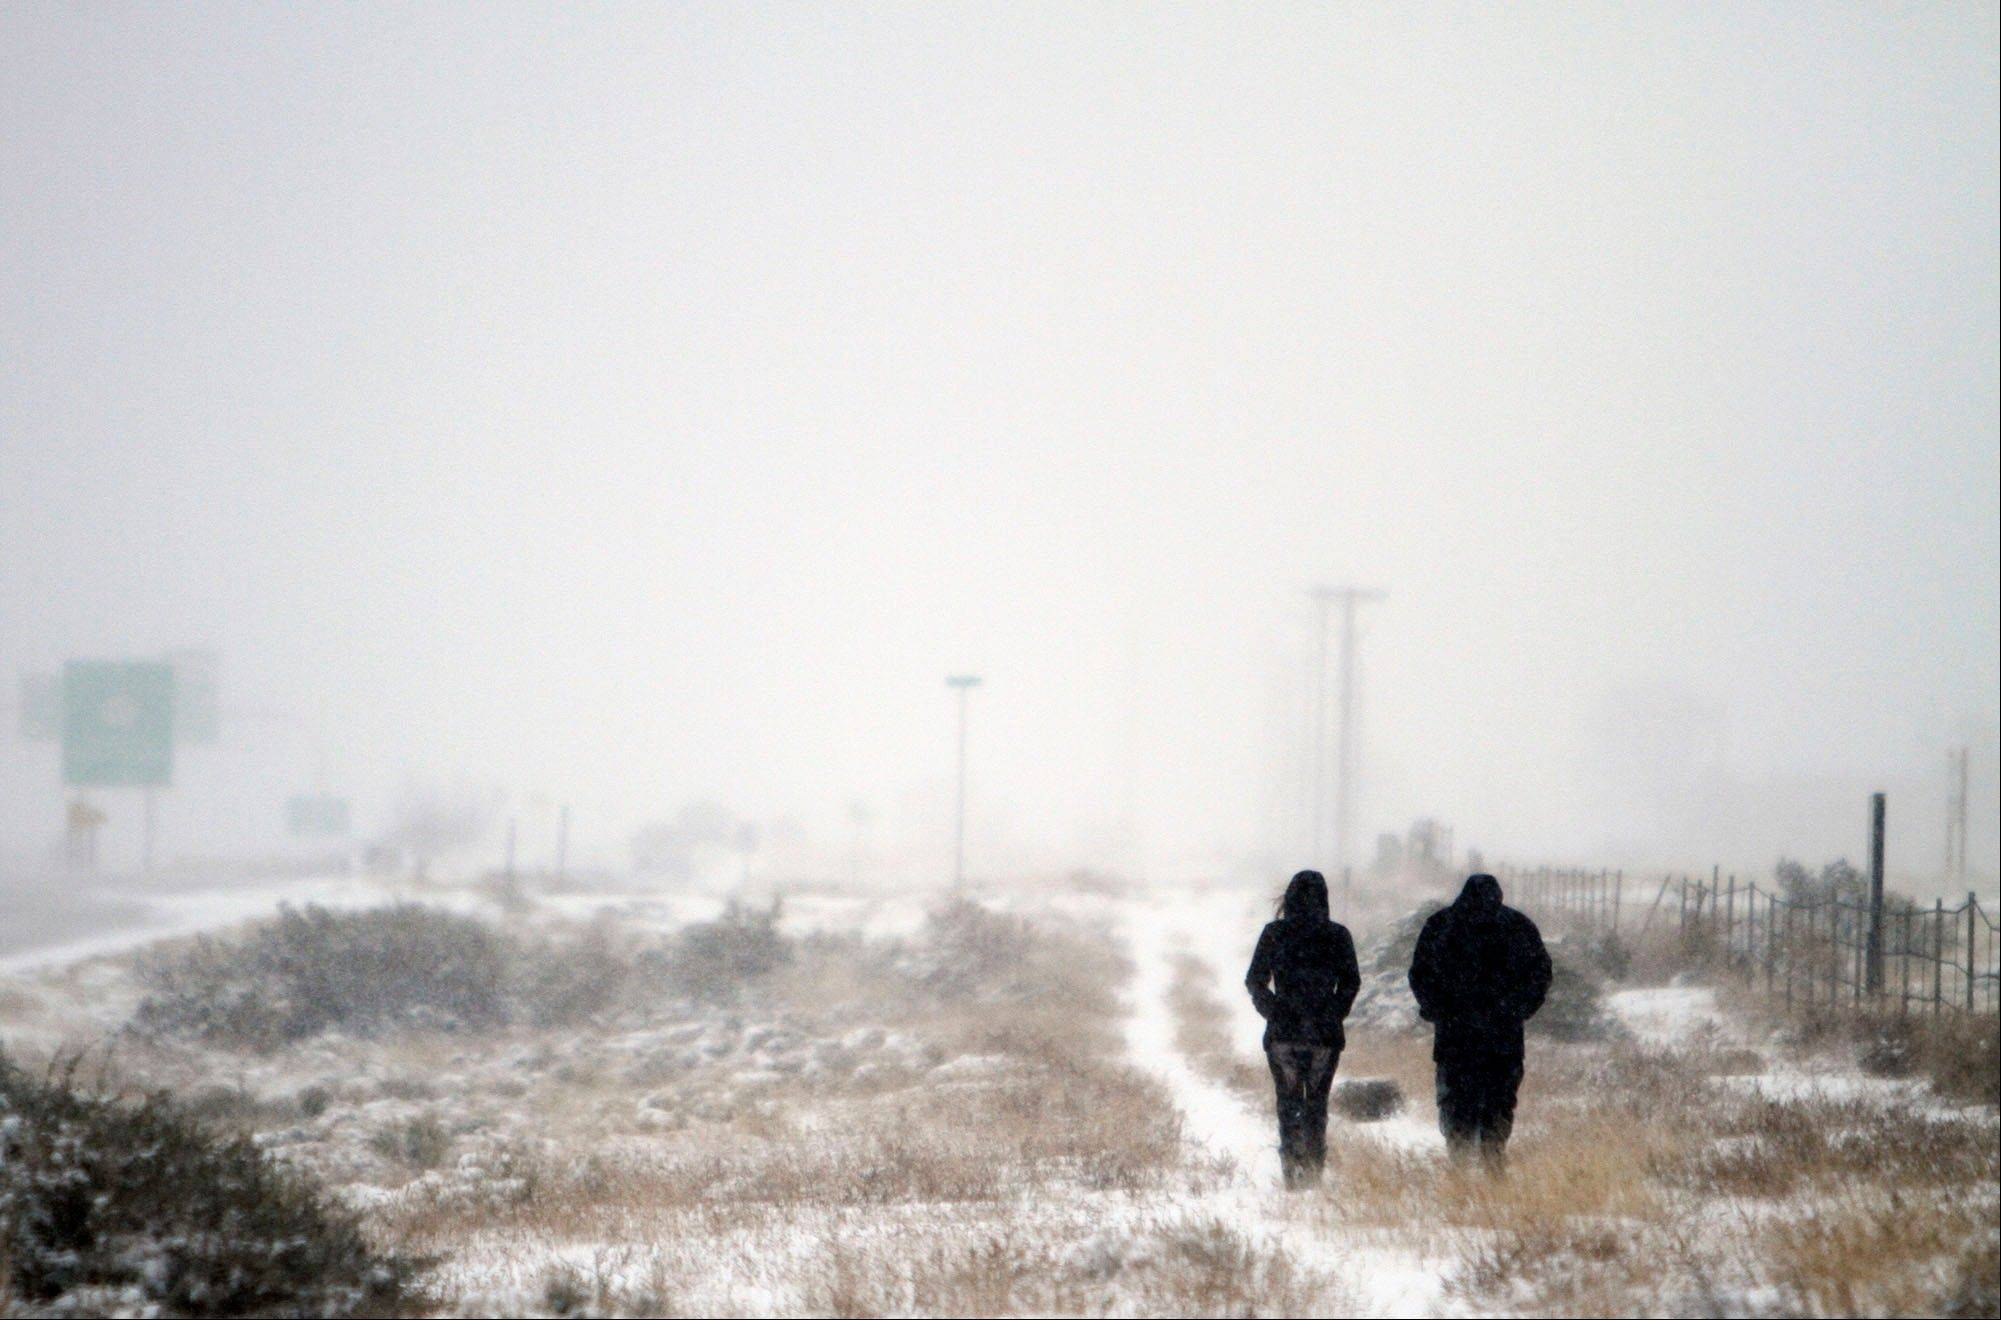 Jennifer Maez, left, and Jared Romero go out for a stroll in the snow on the Frontage Road along I-25 near Santa Fe, N.M. Thursday, Dec. 5, 2013.